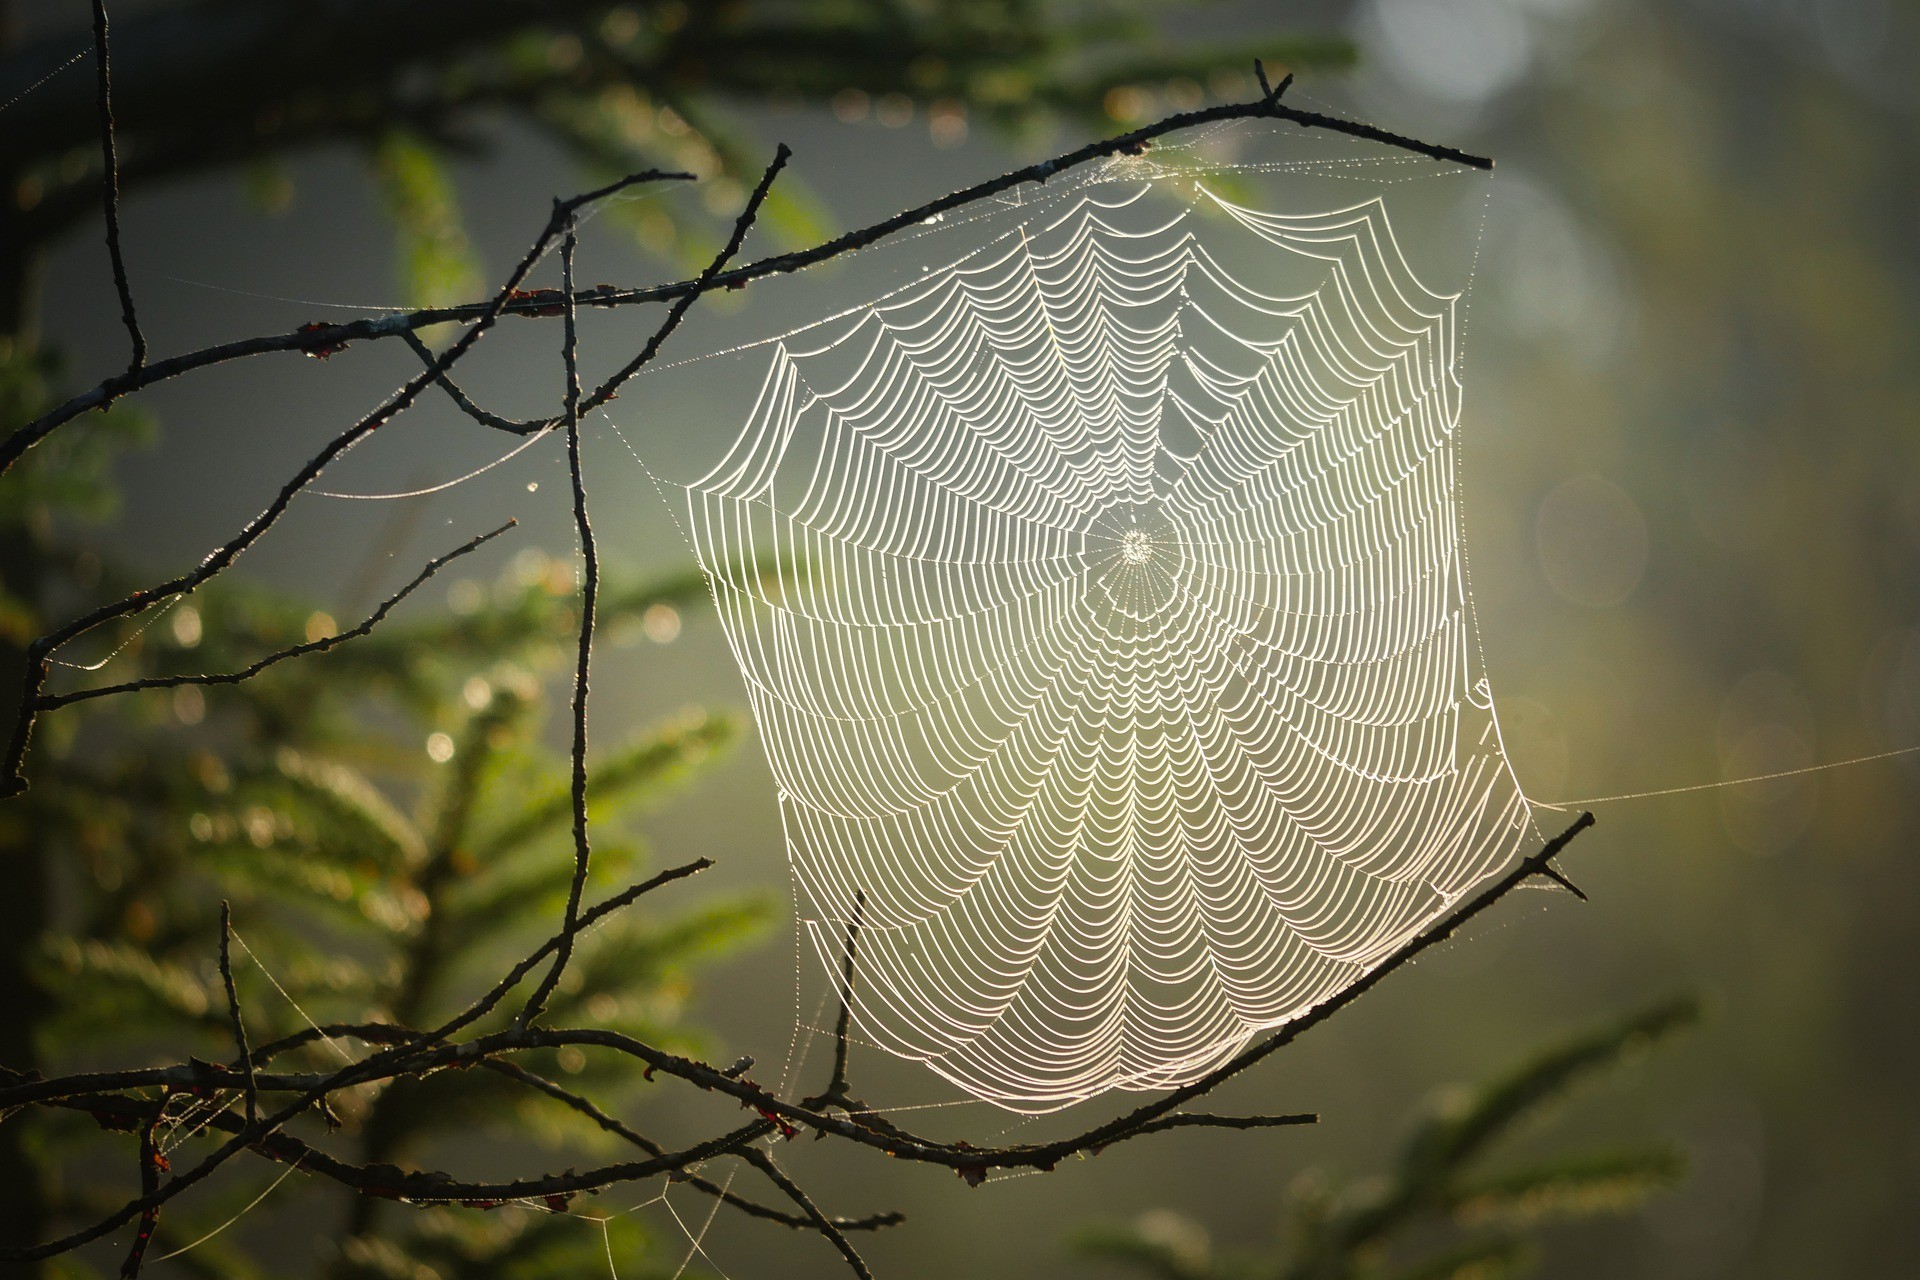 You are the spider that lives in this web. Tell about a day in your life.